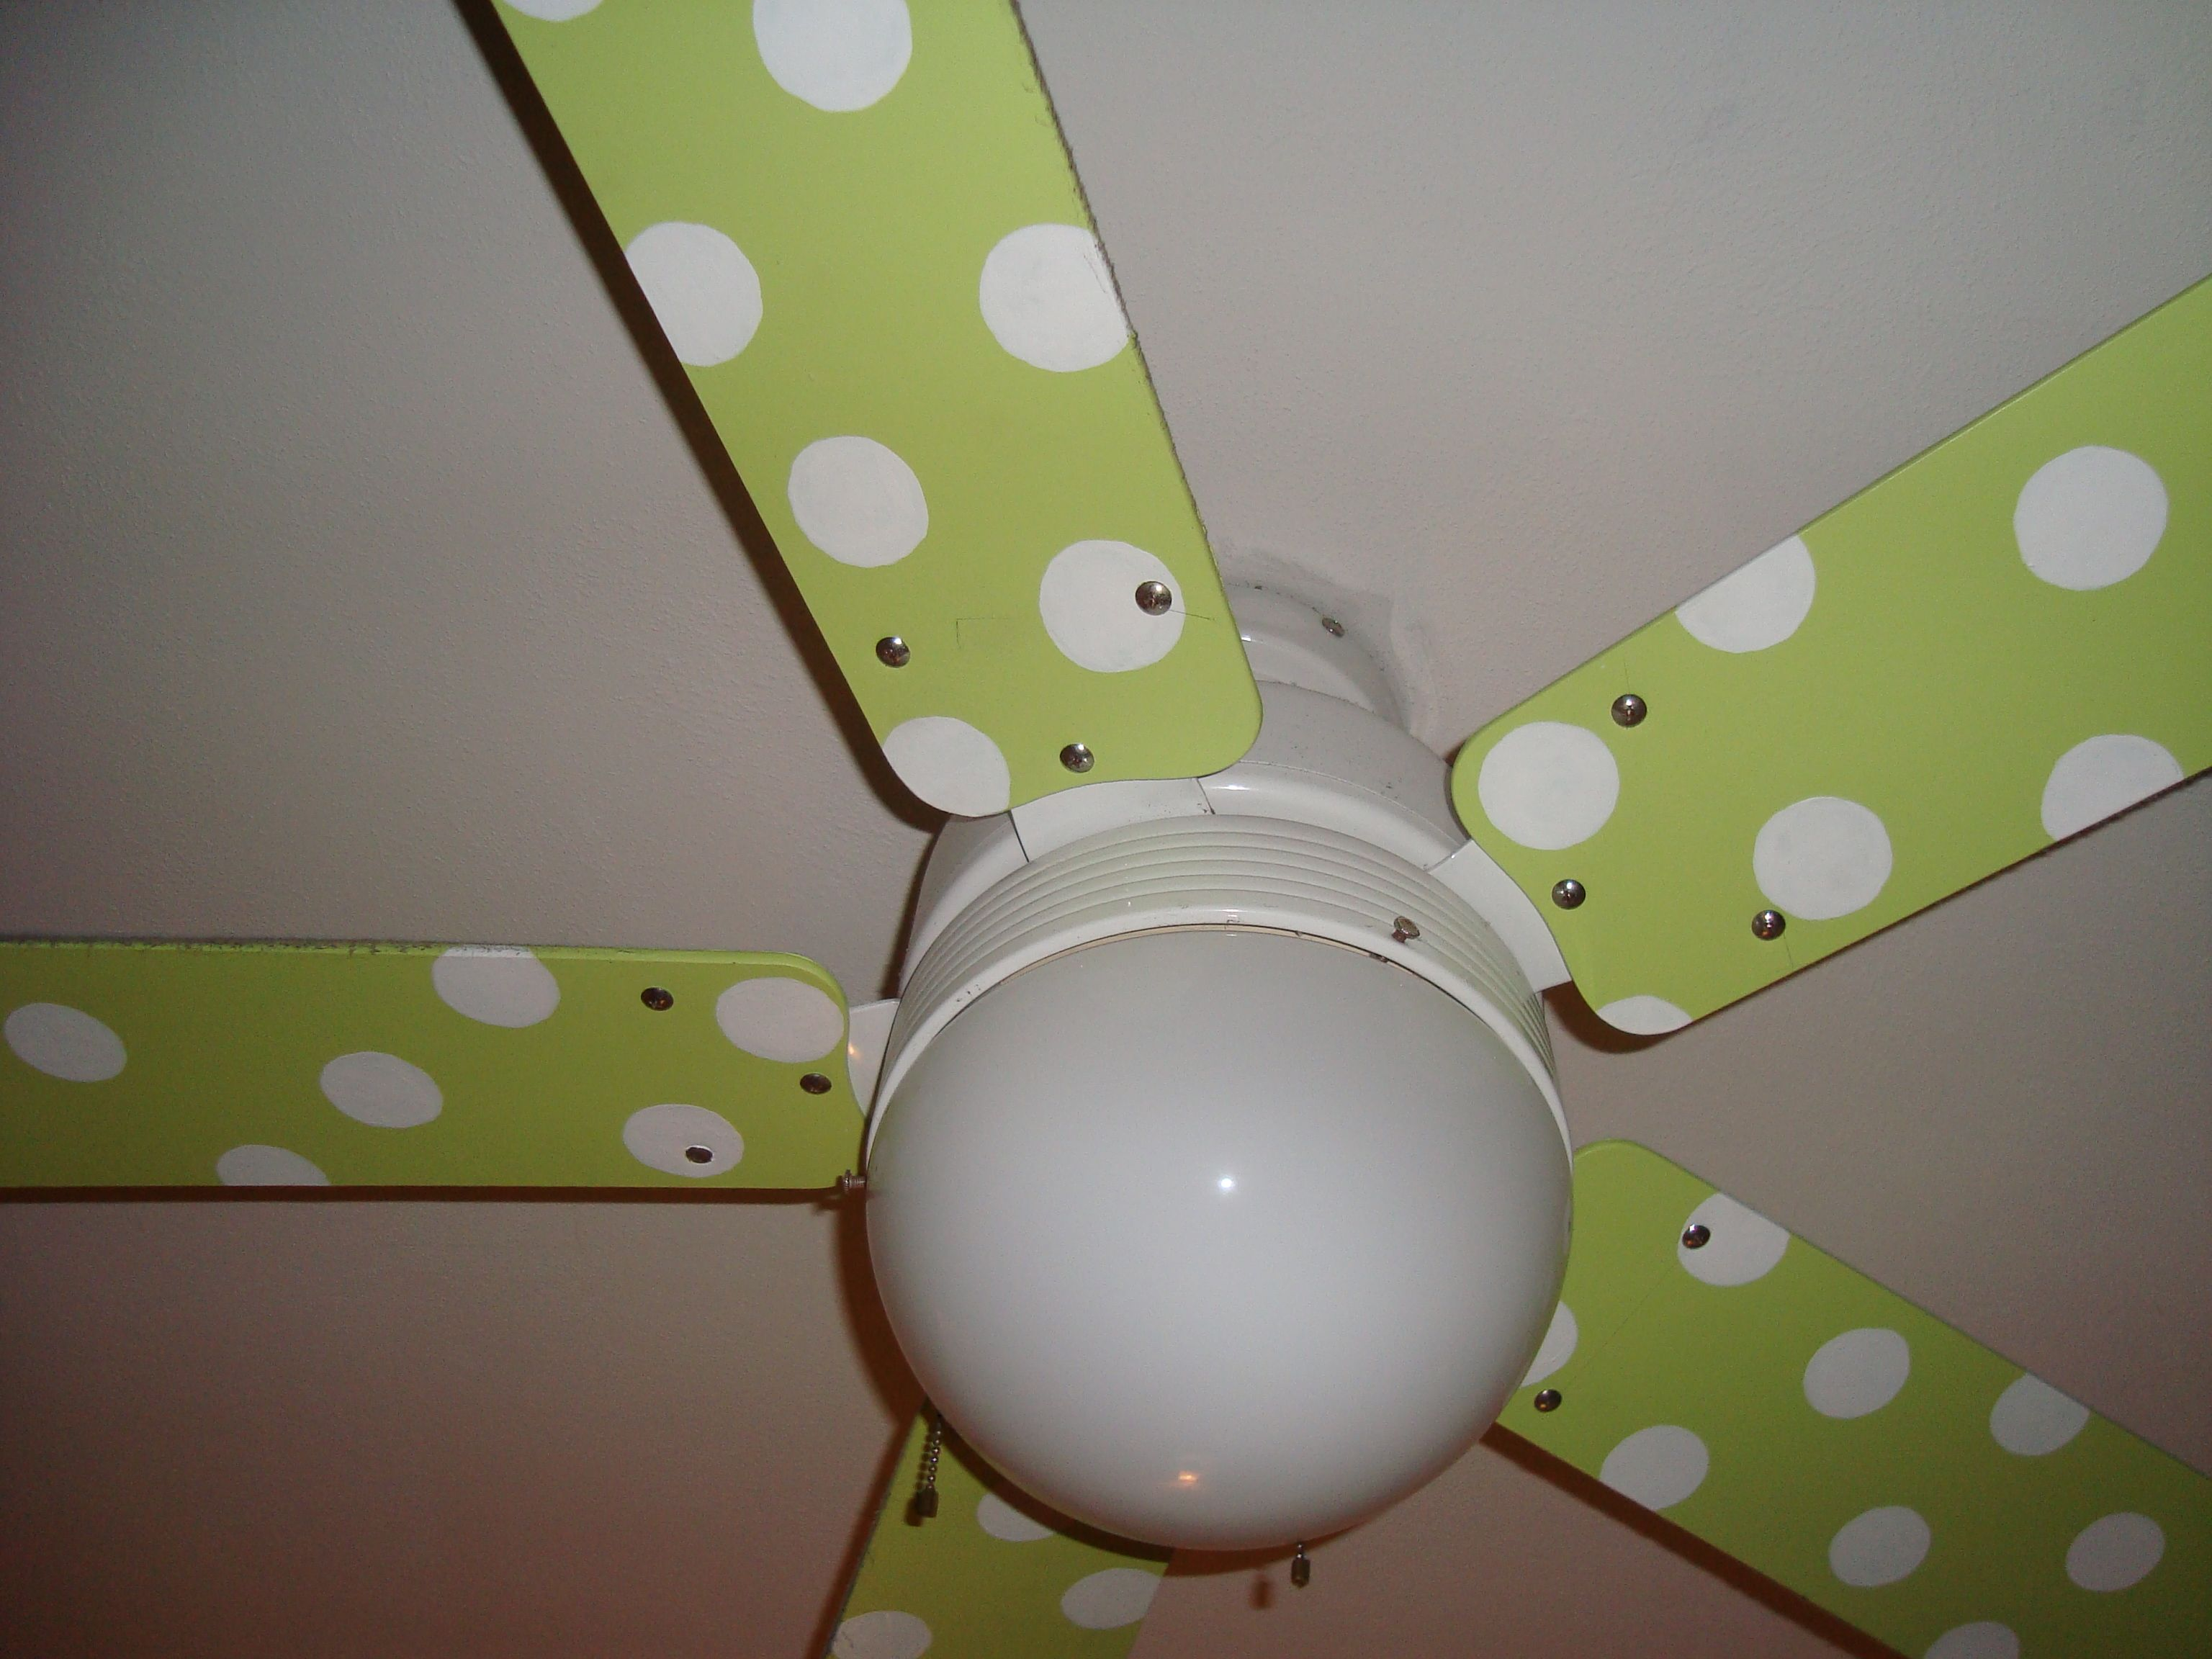 Nursery Ceiling Fans Painted Ceiling Fan Blades To Match Nursery Decor My